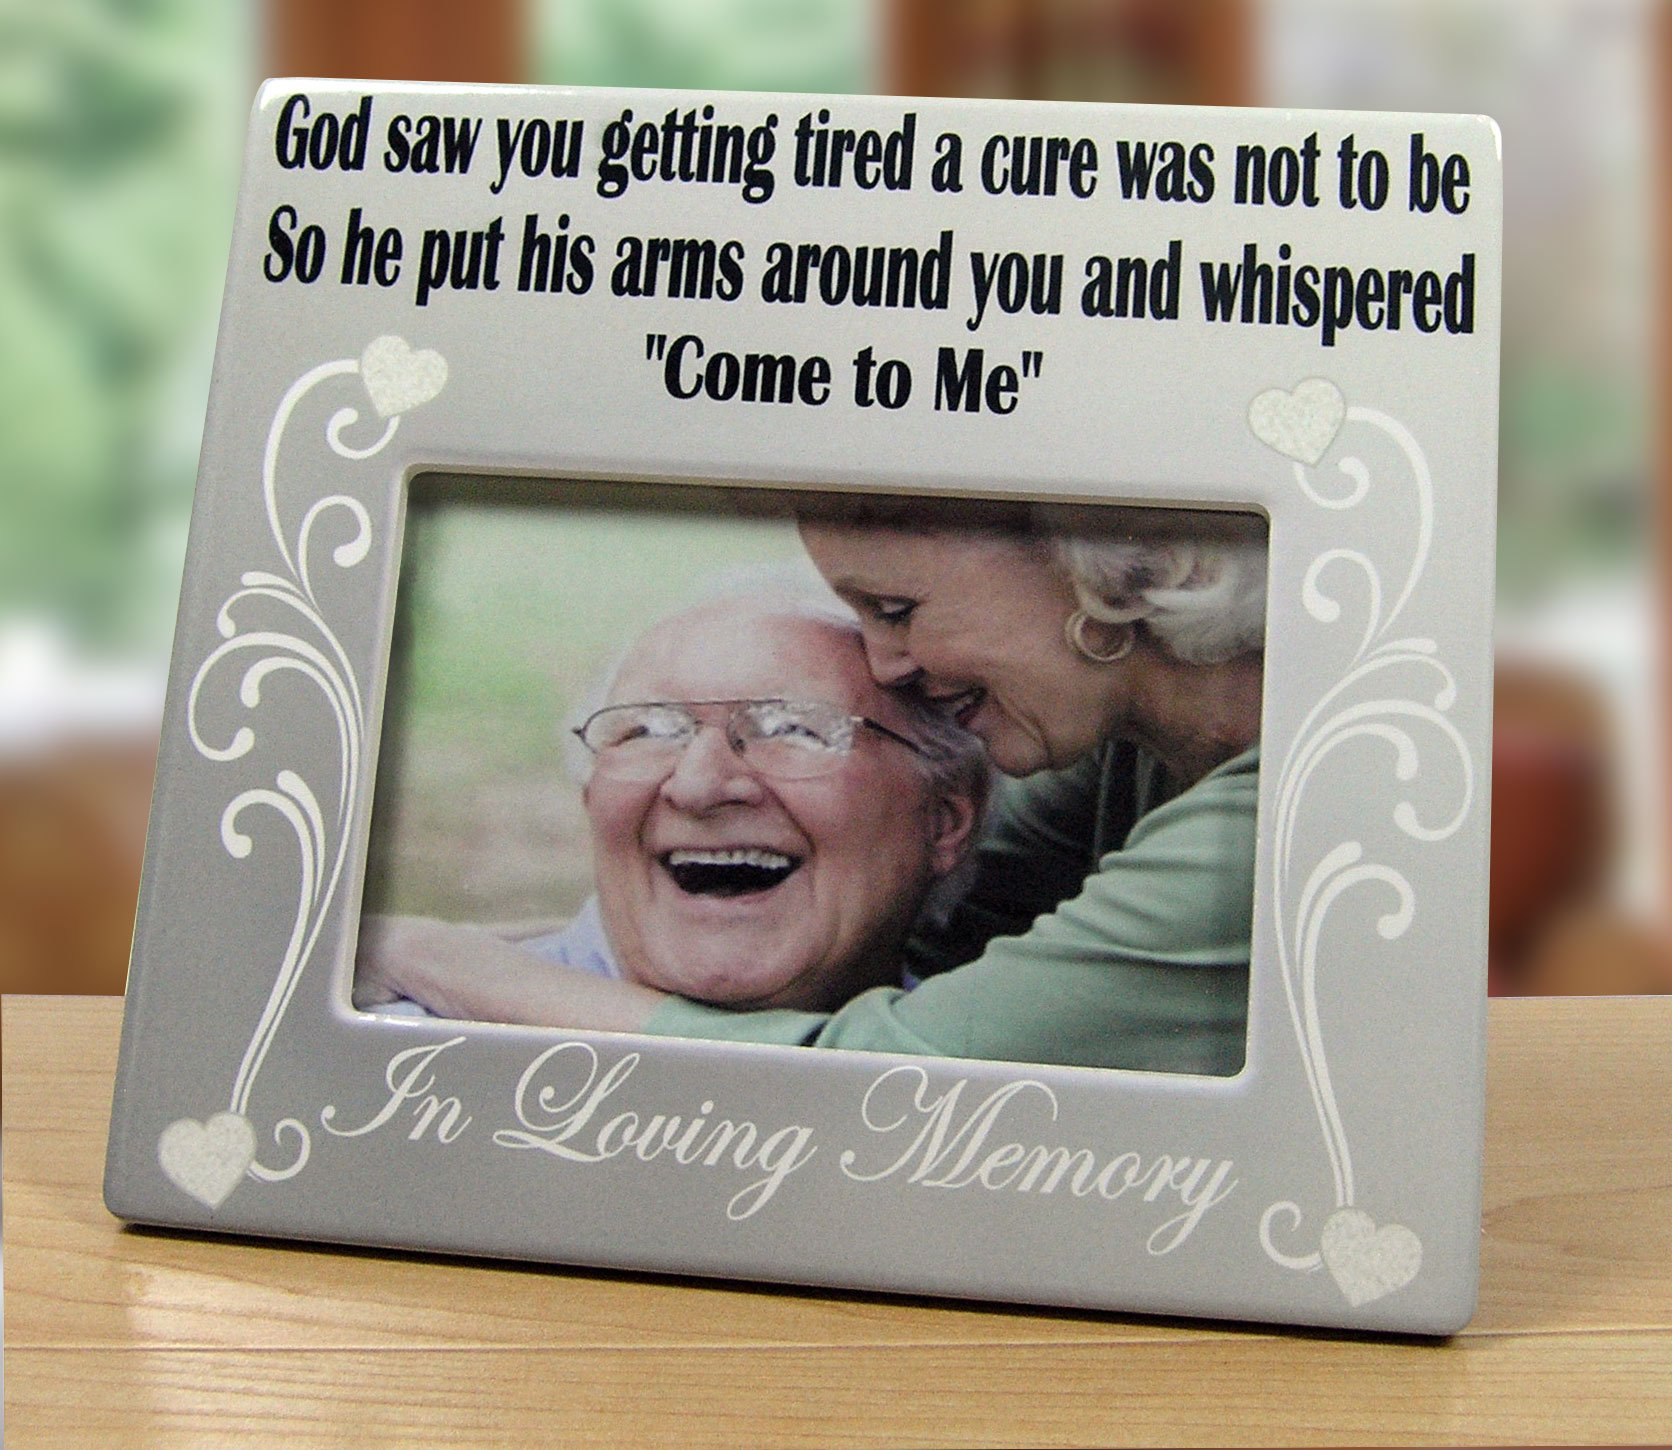 Banberry Designs Memorial Frame - in Loving Memory Frame - God Saw You Getting Tired and a Cure was Not to Be - 4 x 6 Ceramic Plaque - Loss of a Loved One Gift